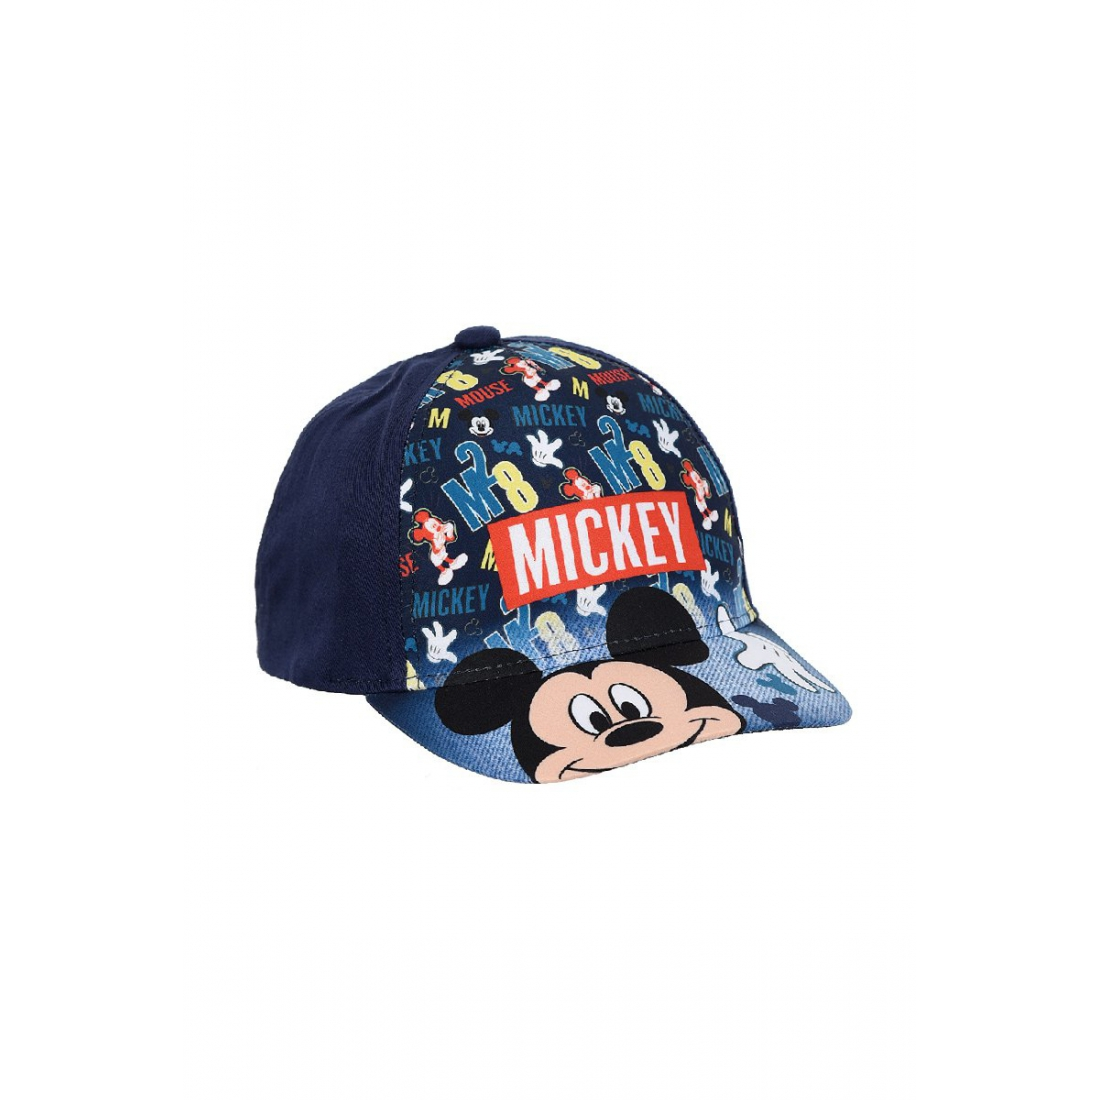 Mickey cap letters